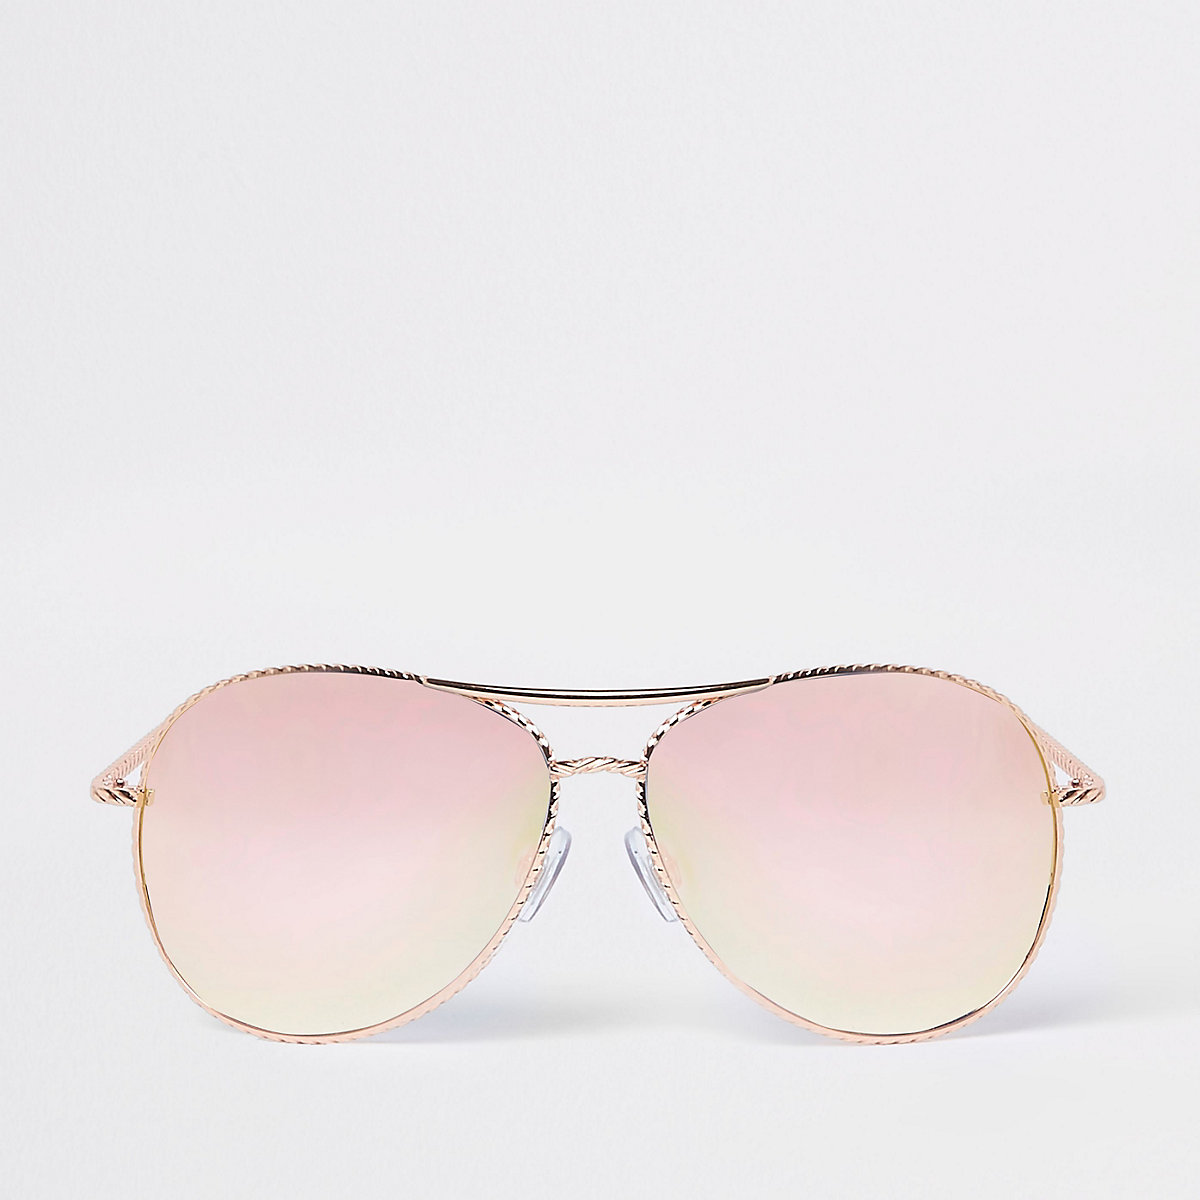 Rose gold twisted mirror aviator sunglasses